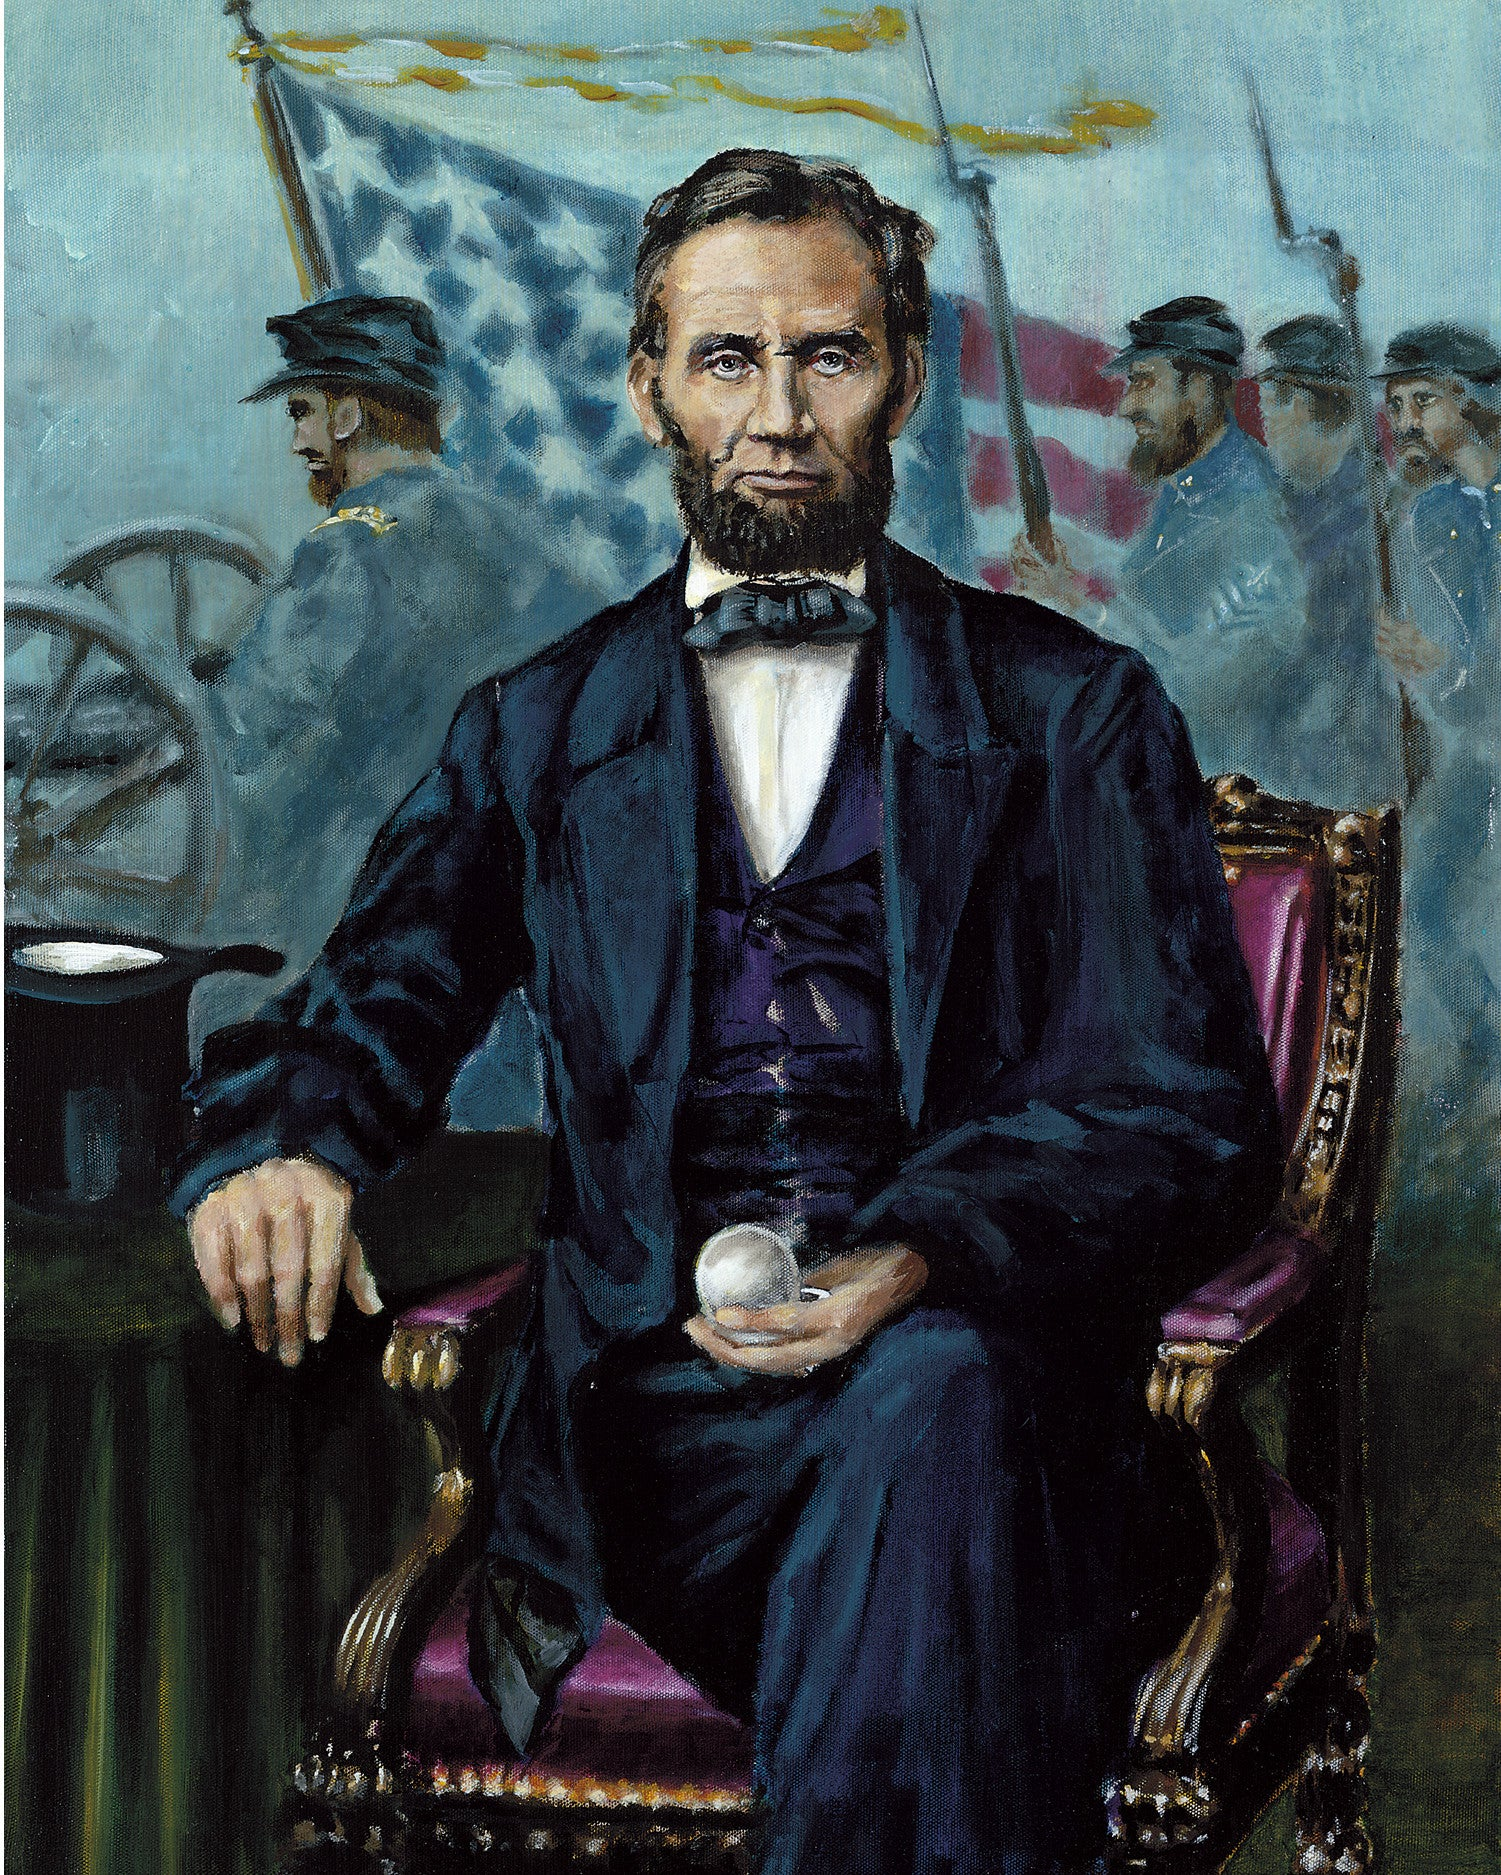 Abraham Lincoln remembers by artist Trevor Goring